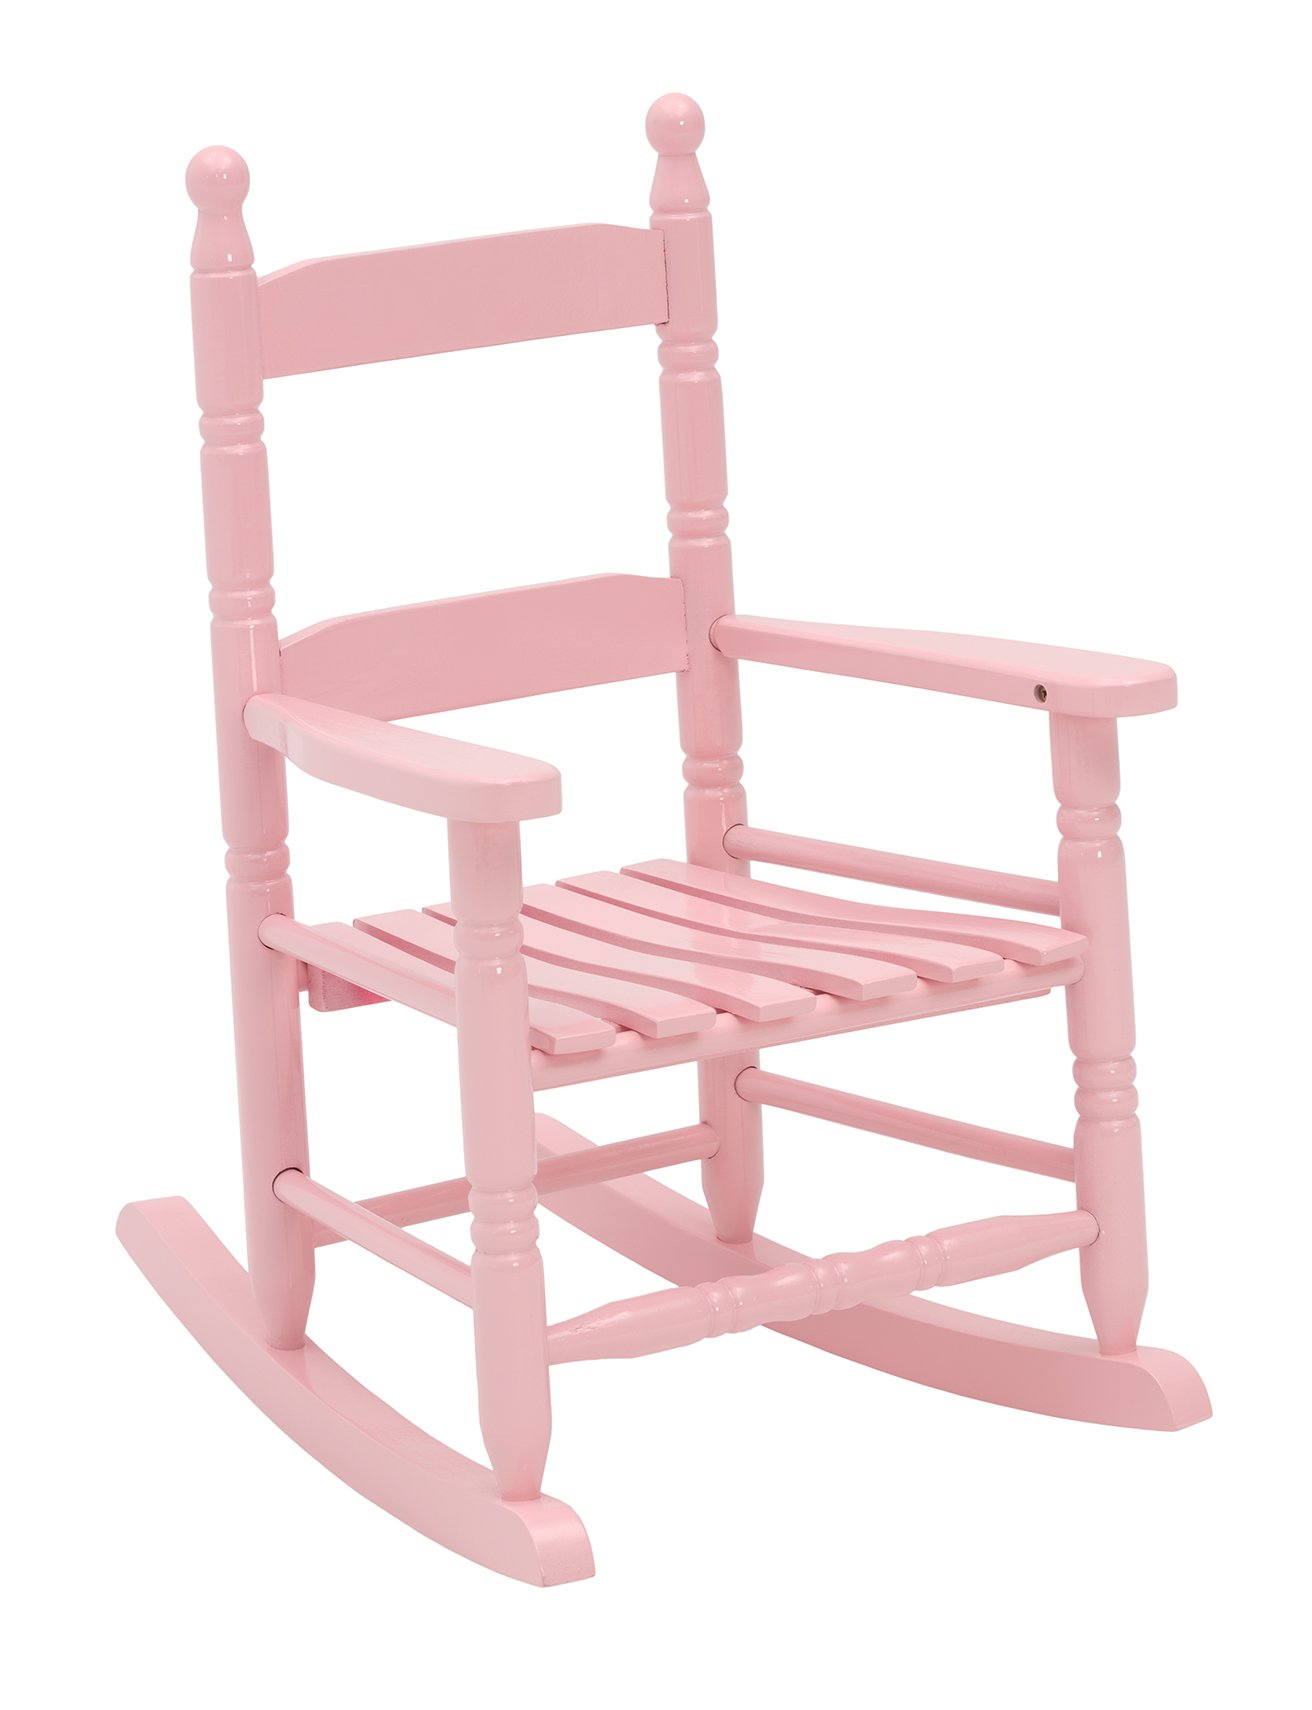 Jack Post KN-10P Knollwood Classic Child's Porch Rocker, Pink by Jack Post (Image #1)